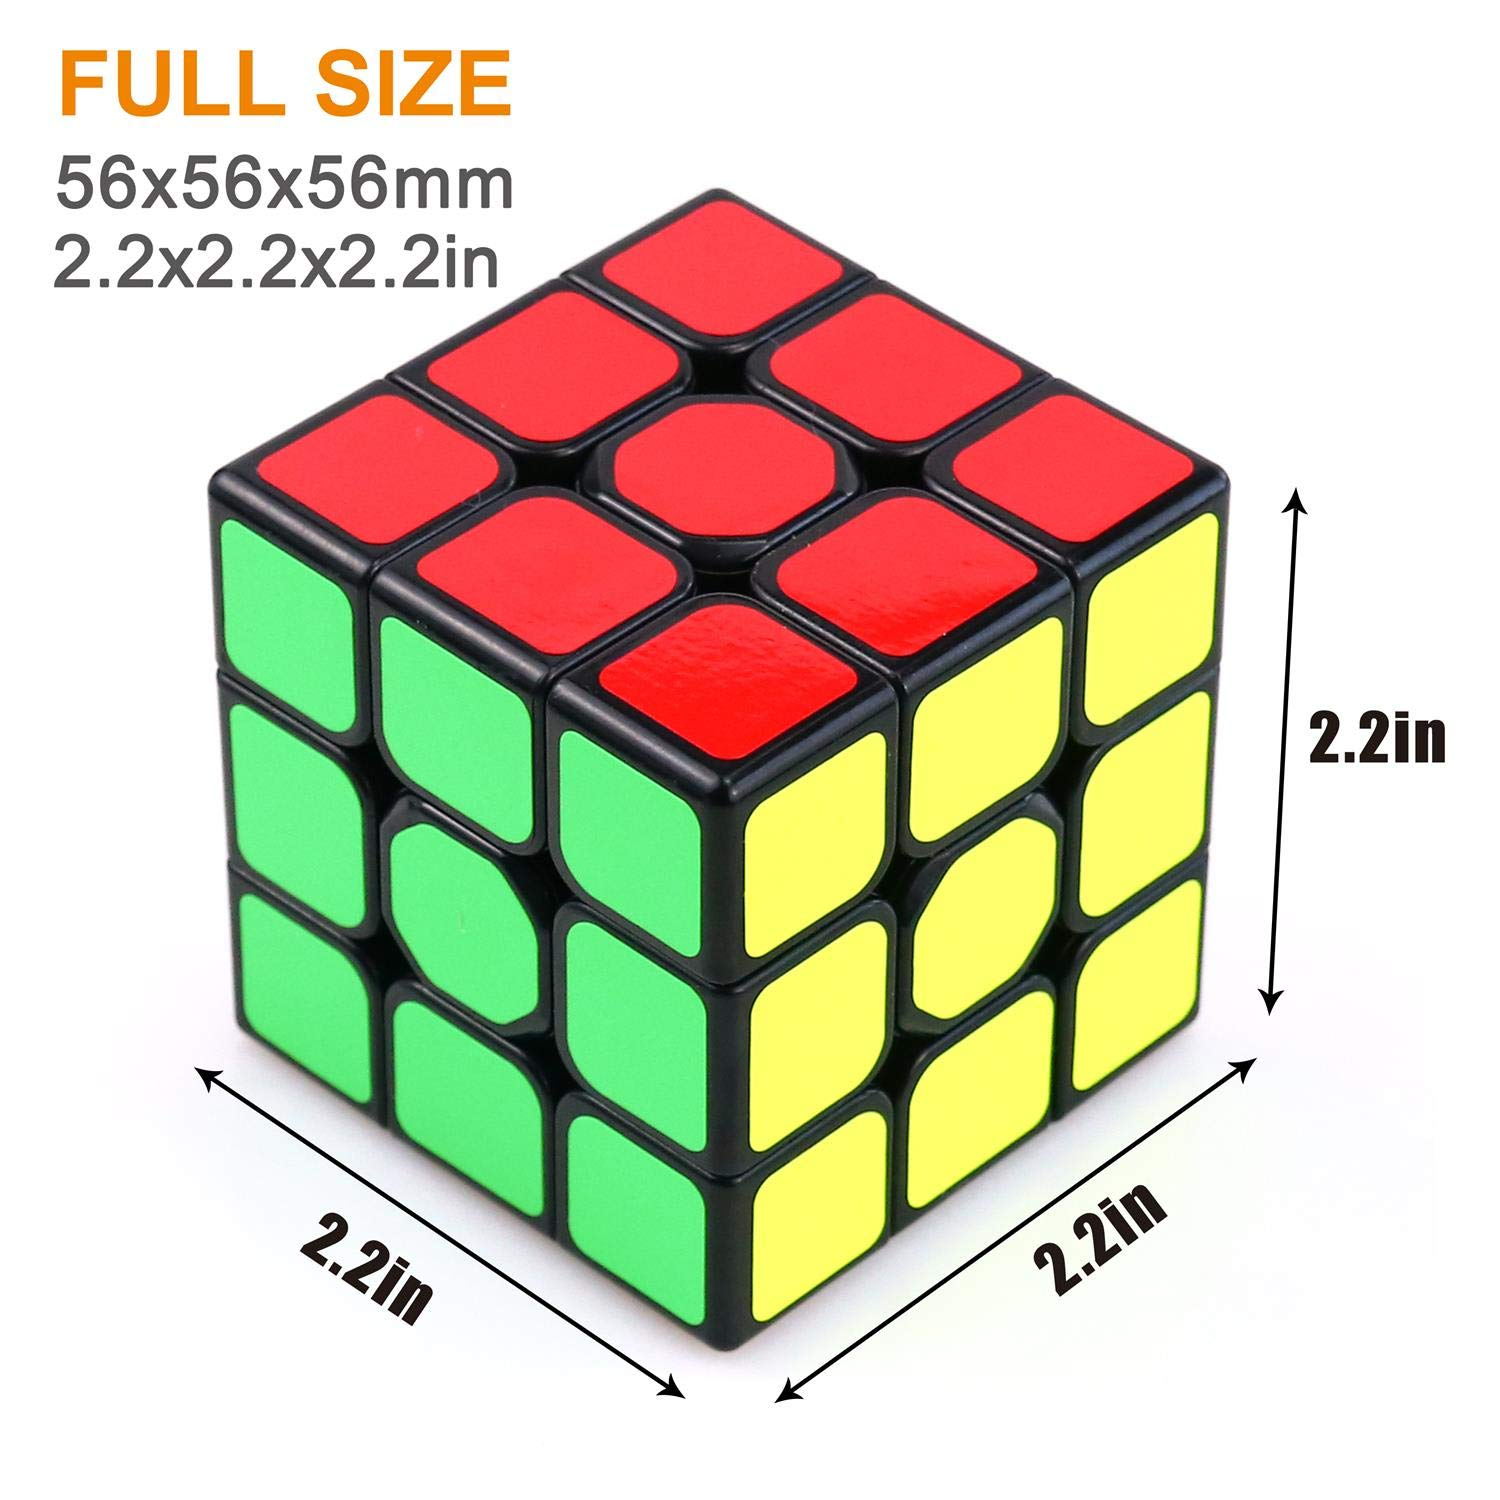 Party Puzzle Toy,12 Pack Mini Cubes Set Party Favors Cube Puzzle,Original Color 1.18 Puzzle Magic Cube Eco-friendly Safe Material with Vivid Colors,Party Puzzle Game for Boys Girls Kids Toddlers